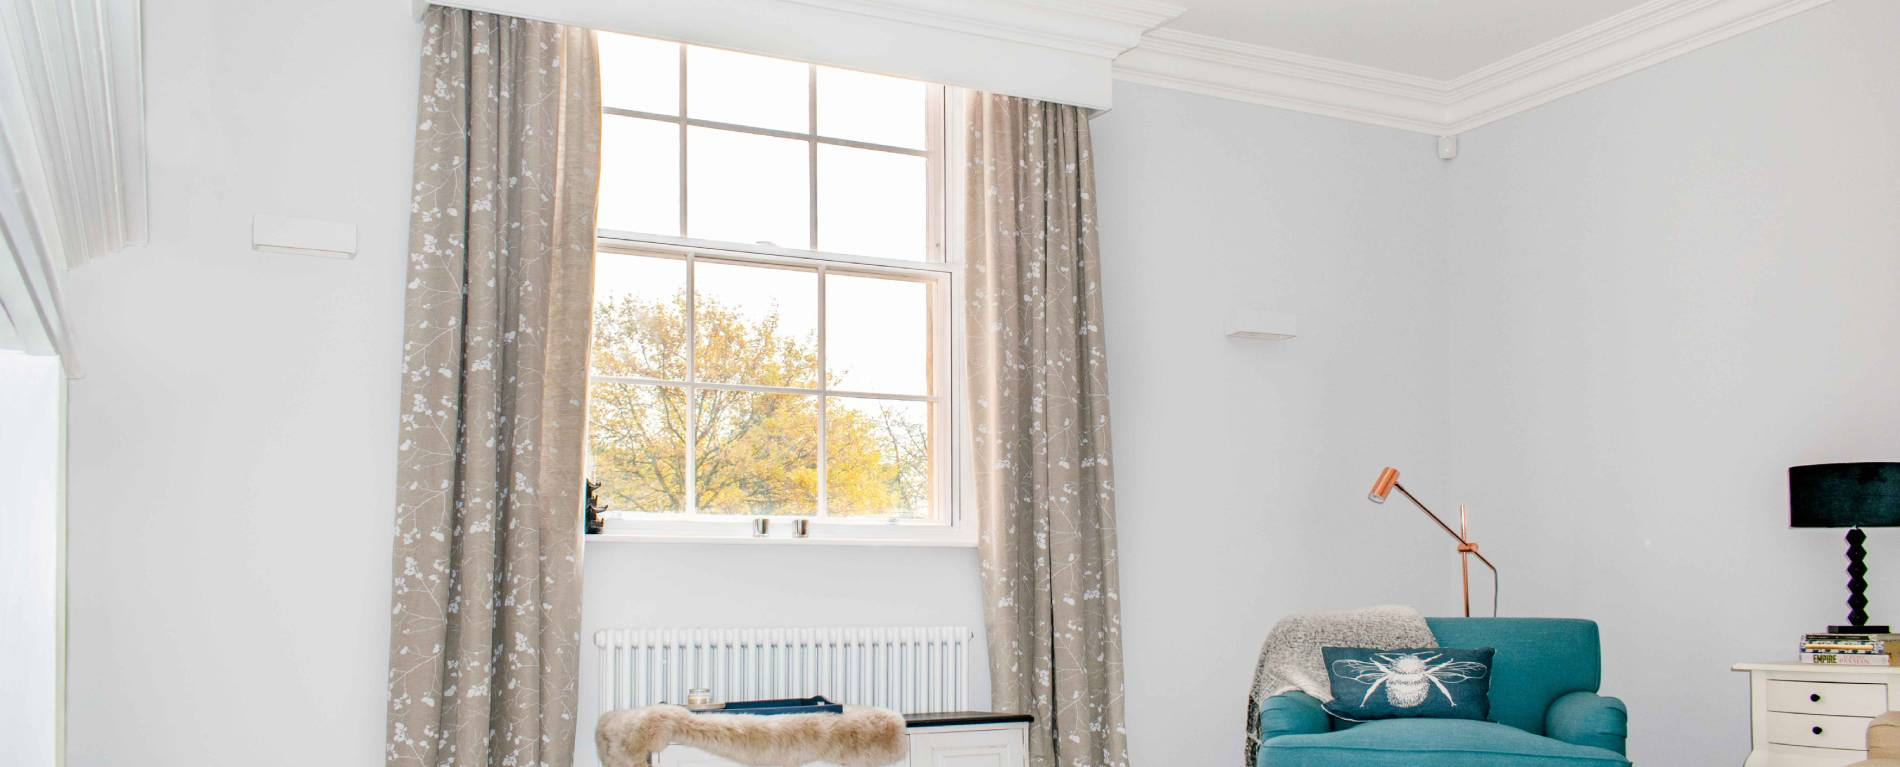 image of a bedroom with secondary acoustic glazing